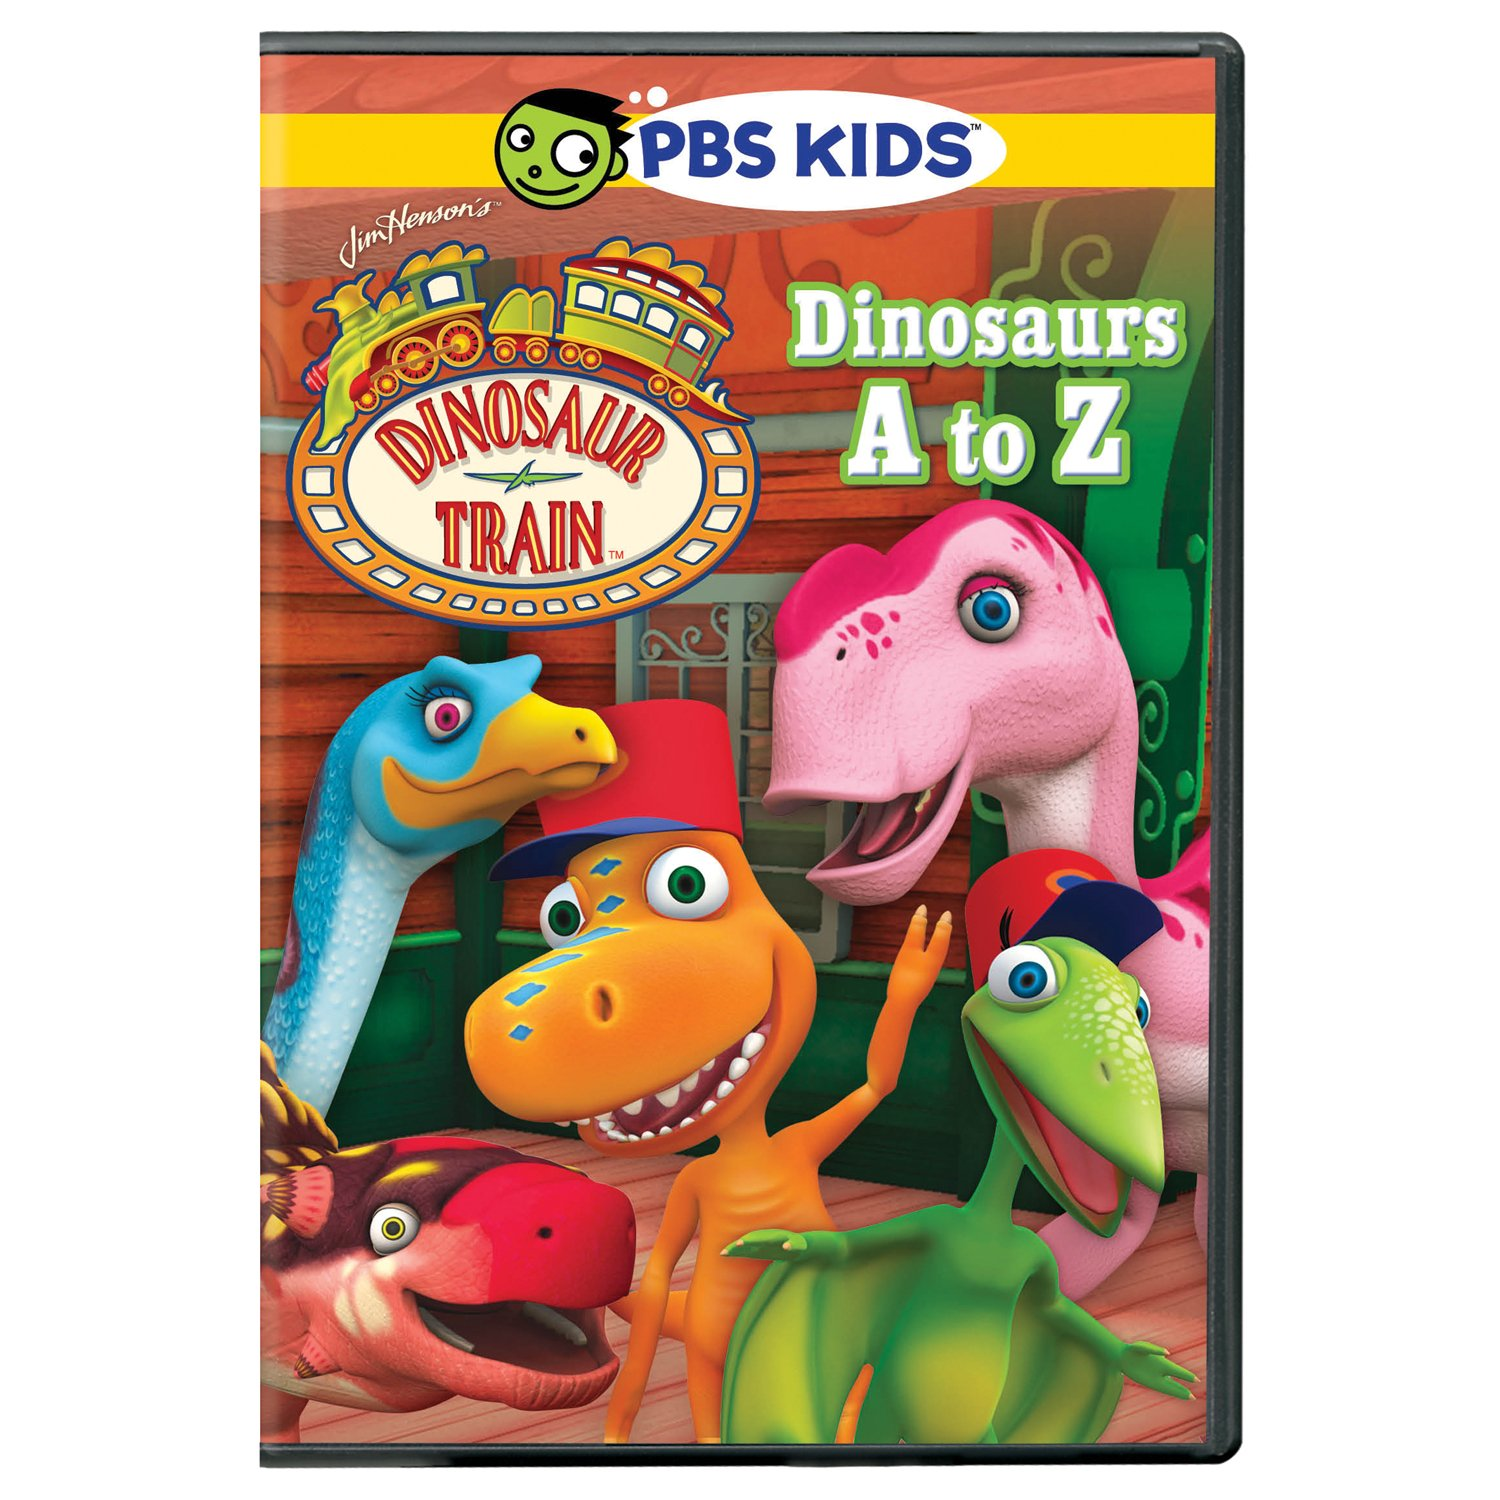 Dinosaur Train Apatosaurus Dinosaur Train Dinosaurs A to